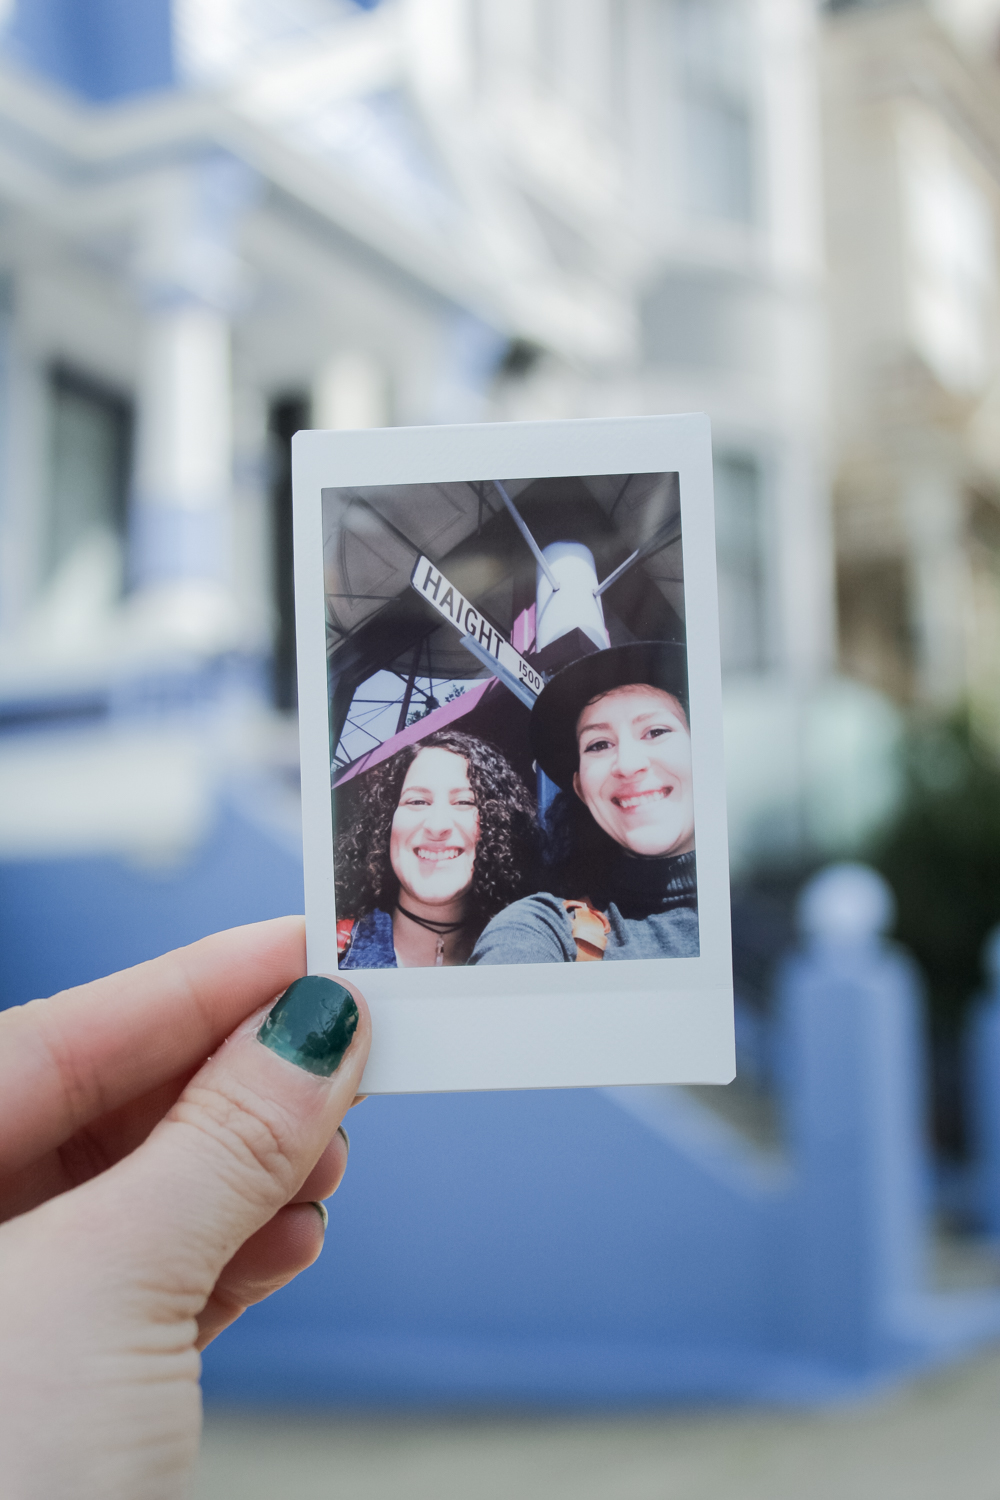 7 PLACES TO VISIT IN HAIGHT-ASHBURY, SAN FRANCISCO || tinted green